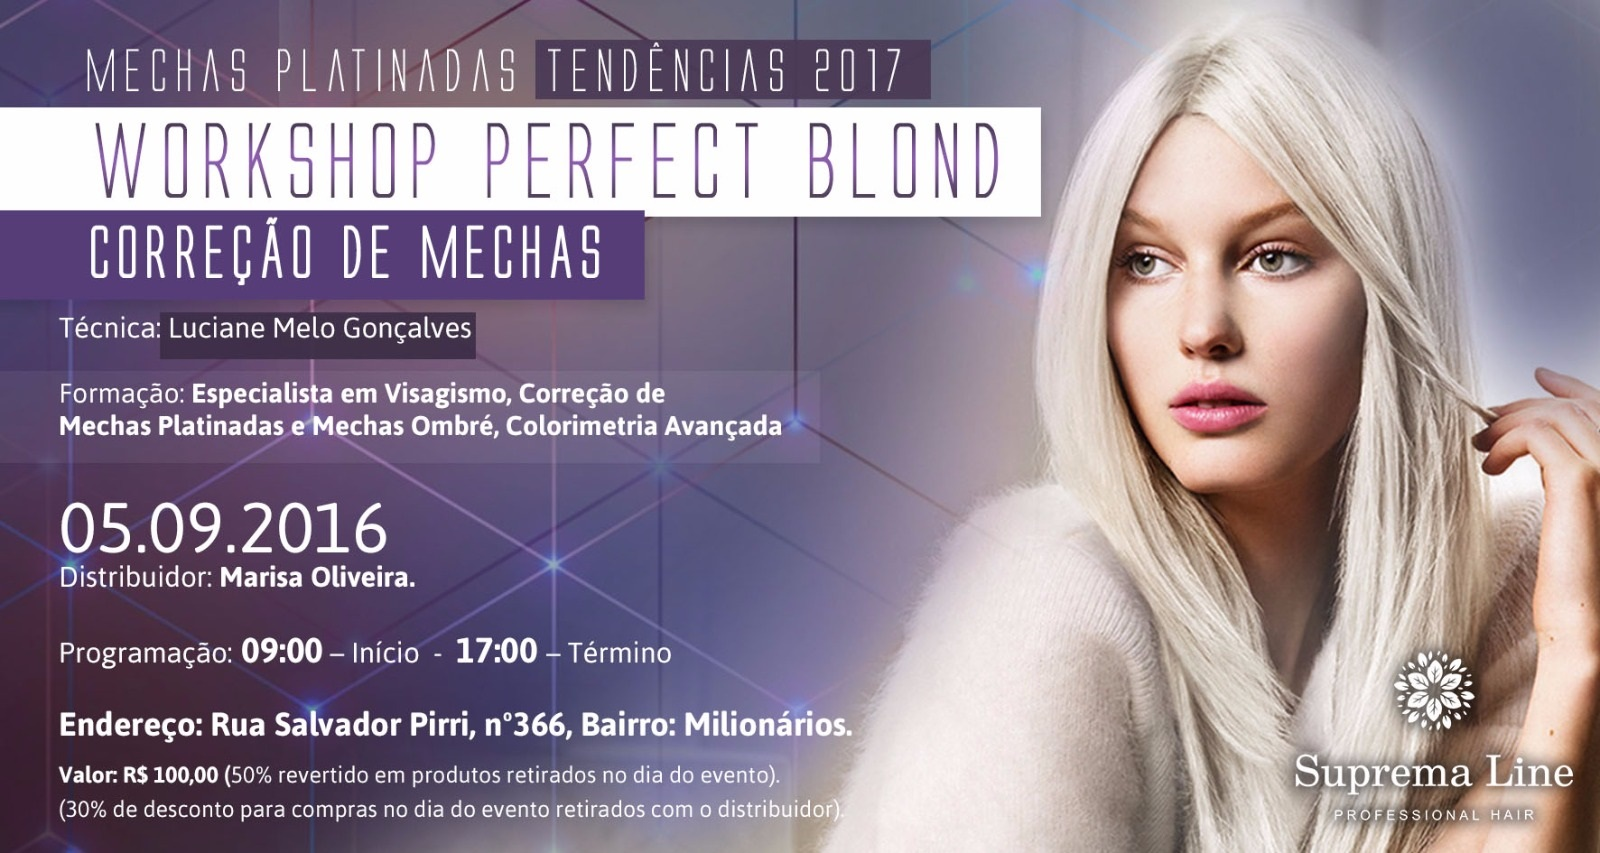 Workshop Perfect Blond: 05/09/2016 - Marisa Oliveira.jpg